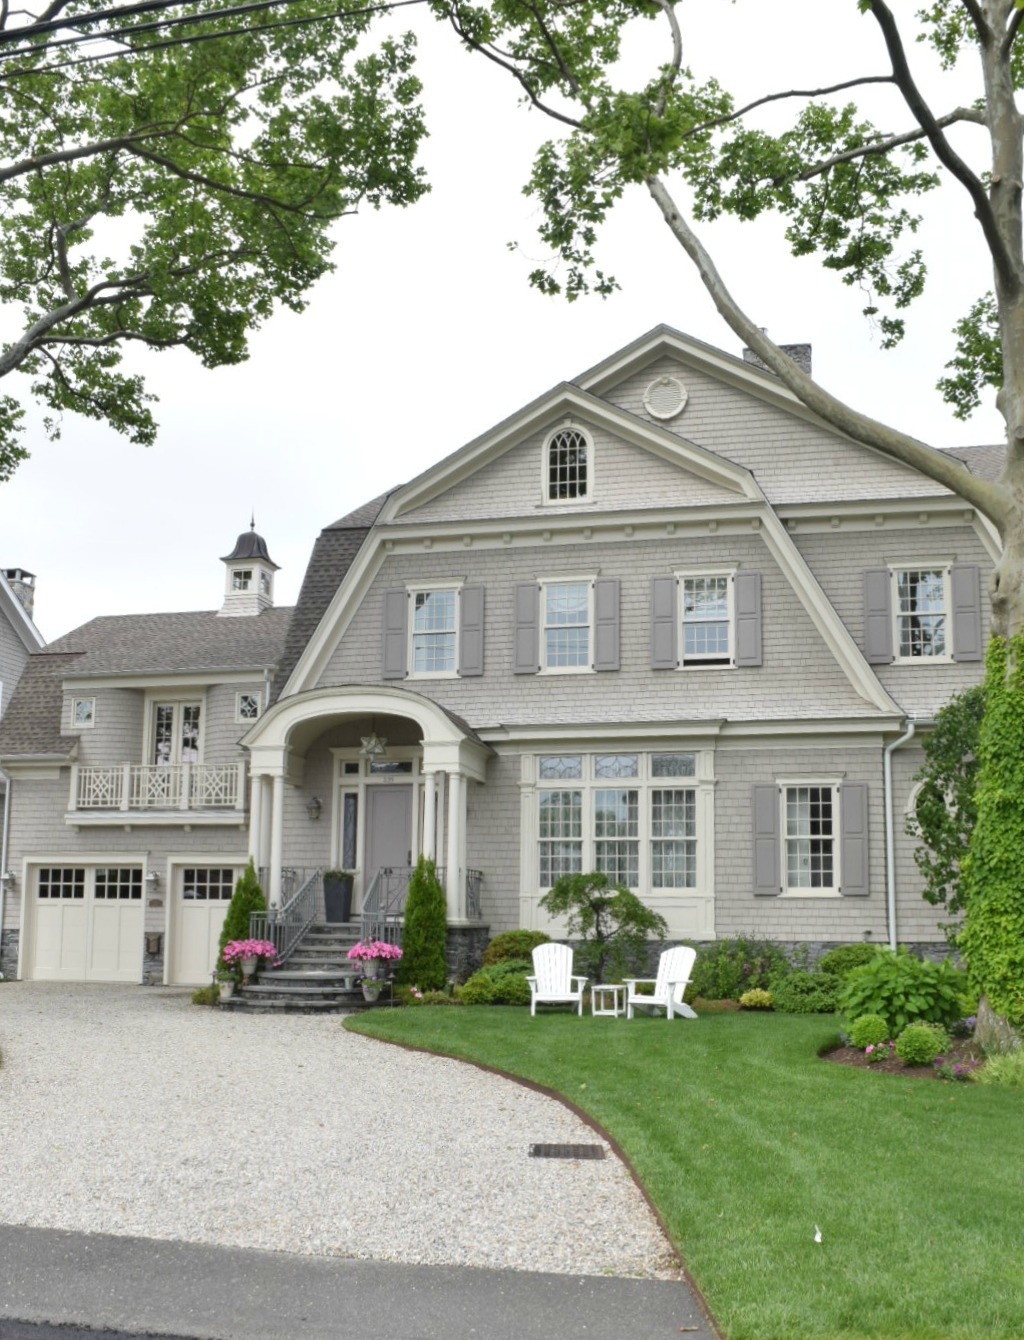 New england homes exterior paint color ideas nesting with grace - Home exterior paint ...